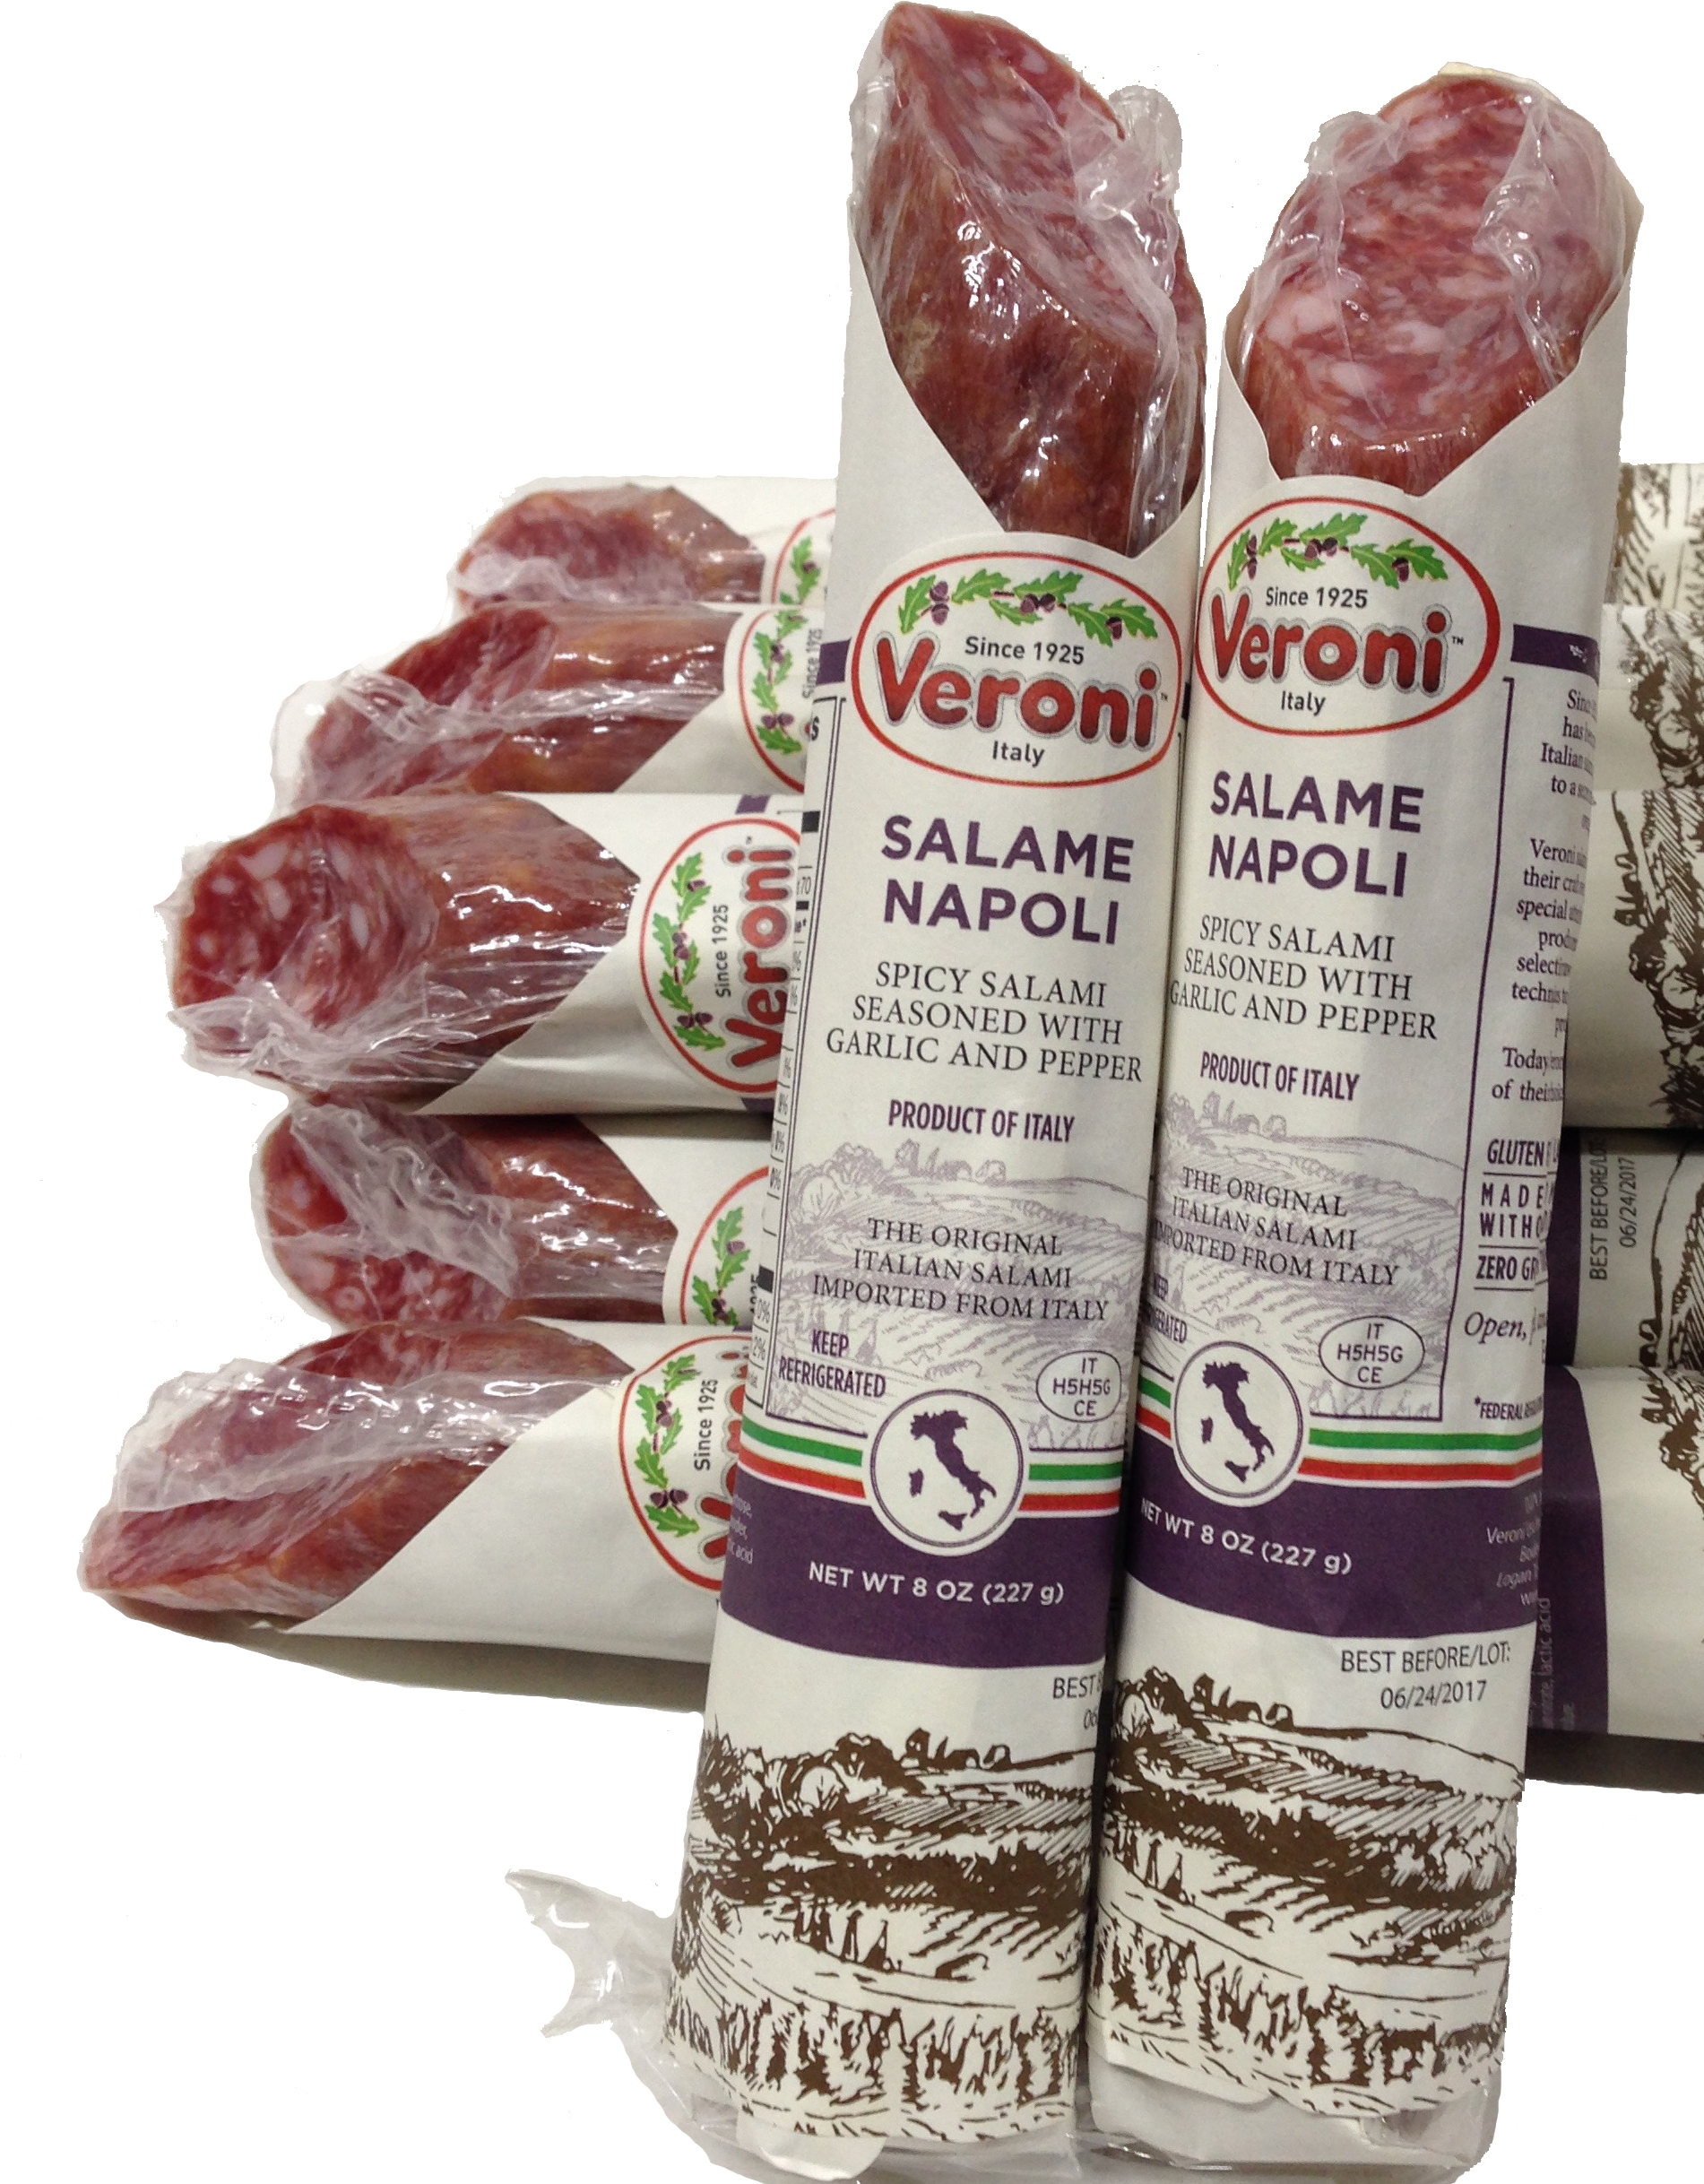 Veroni Salami Napoli Spicy Salami Seasoned with Garlic and Pepper 8 oz (Each) by Verolio